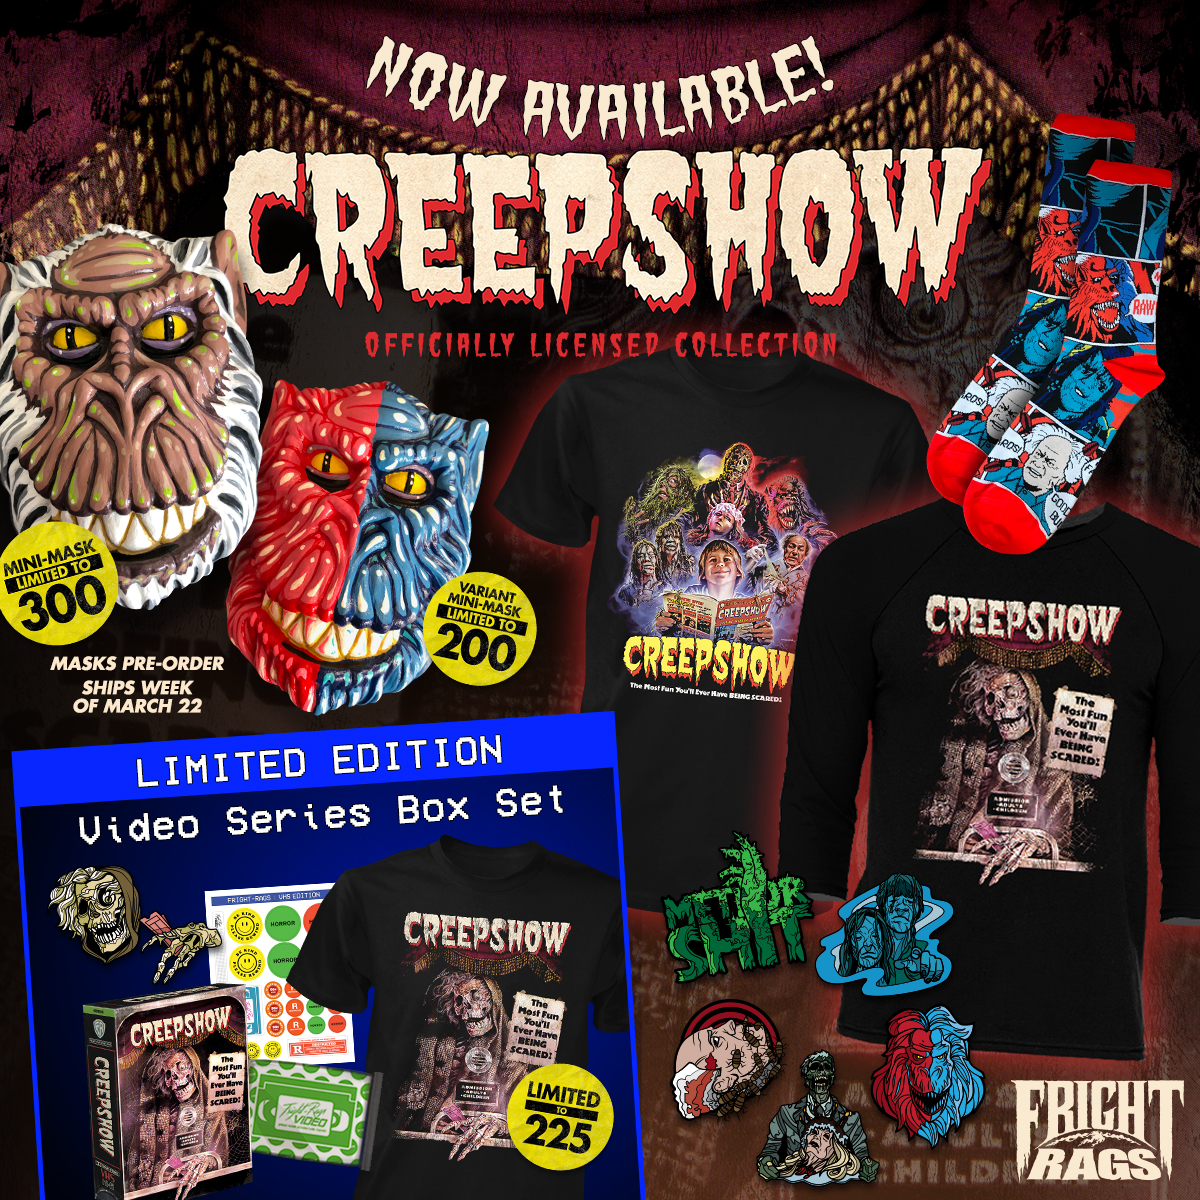 Creepshow FrightRags